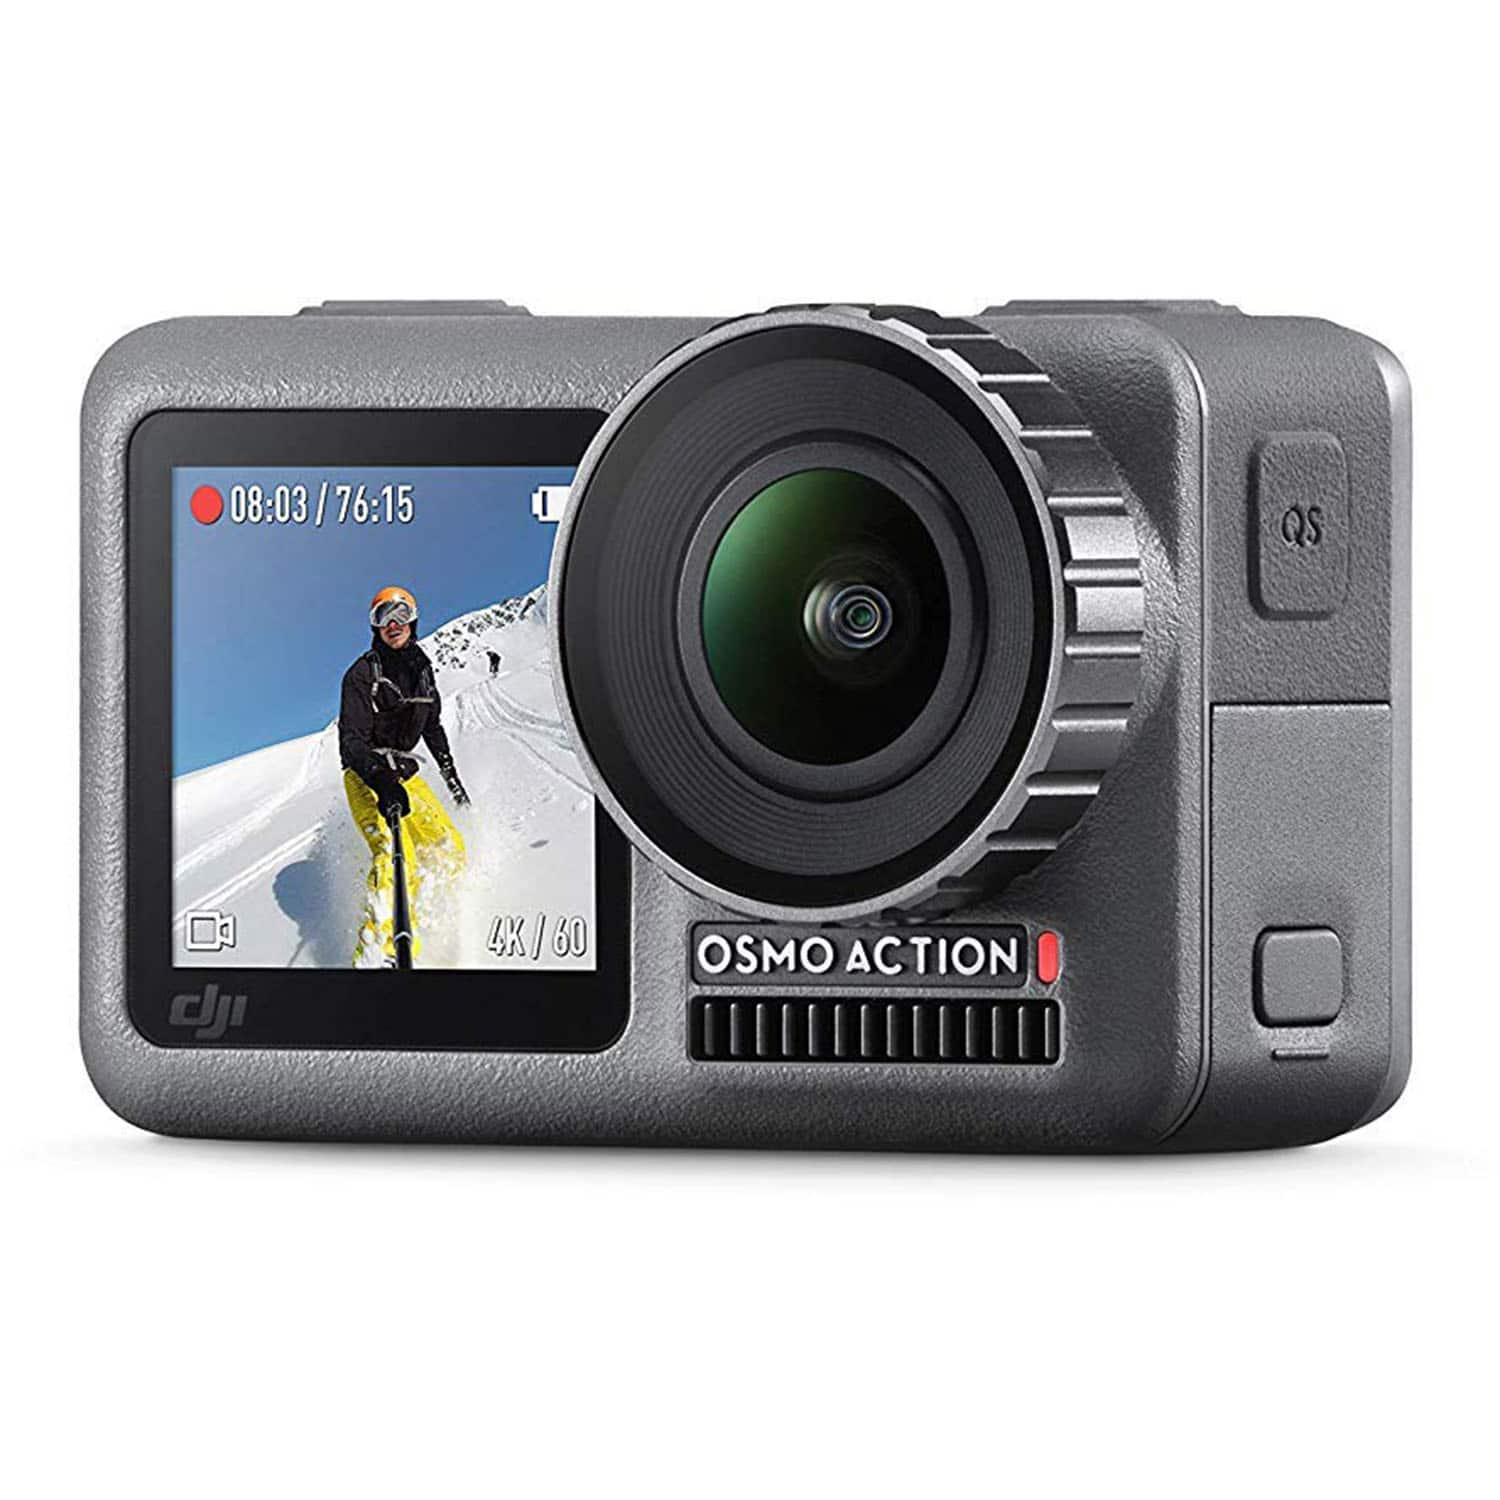 DJI OSMO Action 4K HDR Cam Digital Camera with 2 Displays 36FT/11M Waterproof - $279.65 + Free Shipping